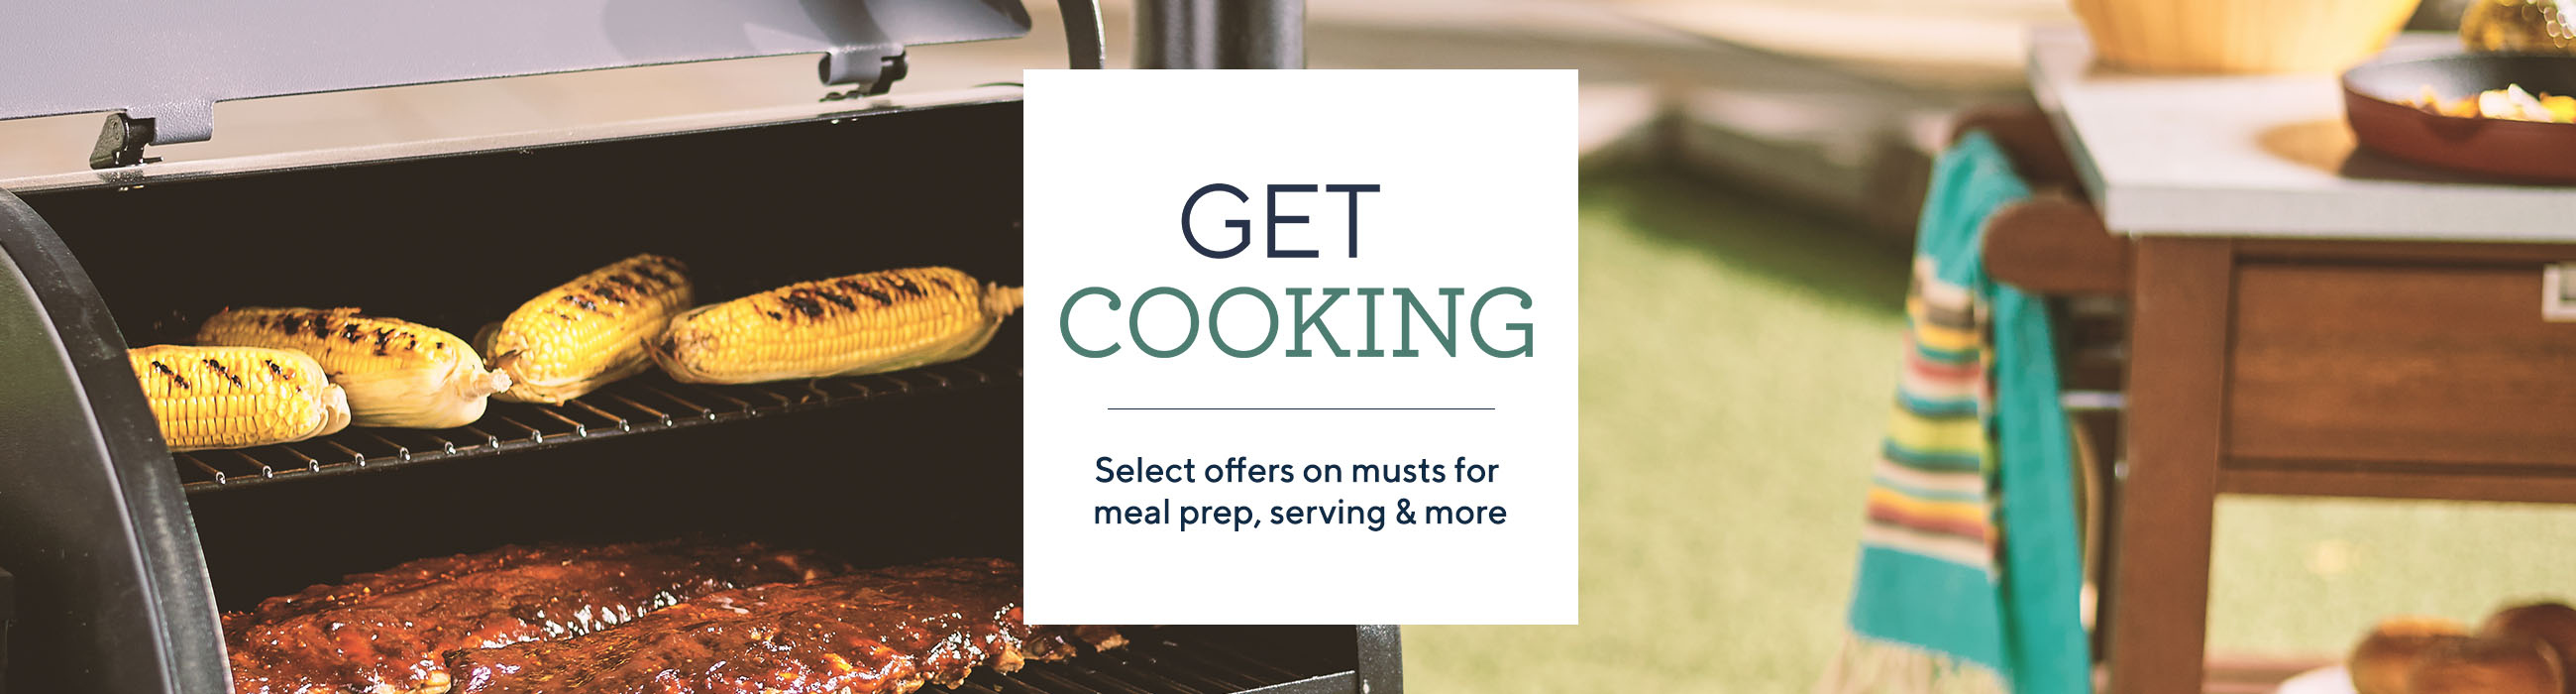 Get Cooking  Select offers on musts for meal prep, serving & more